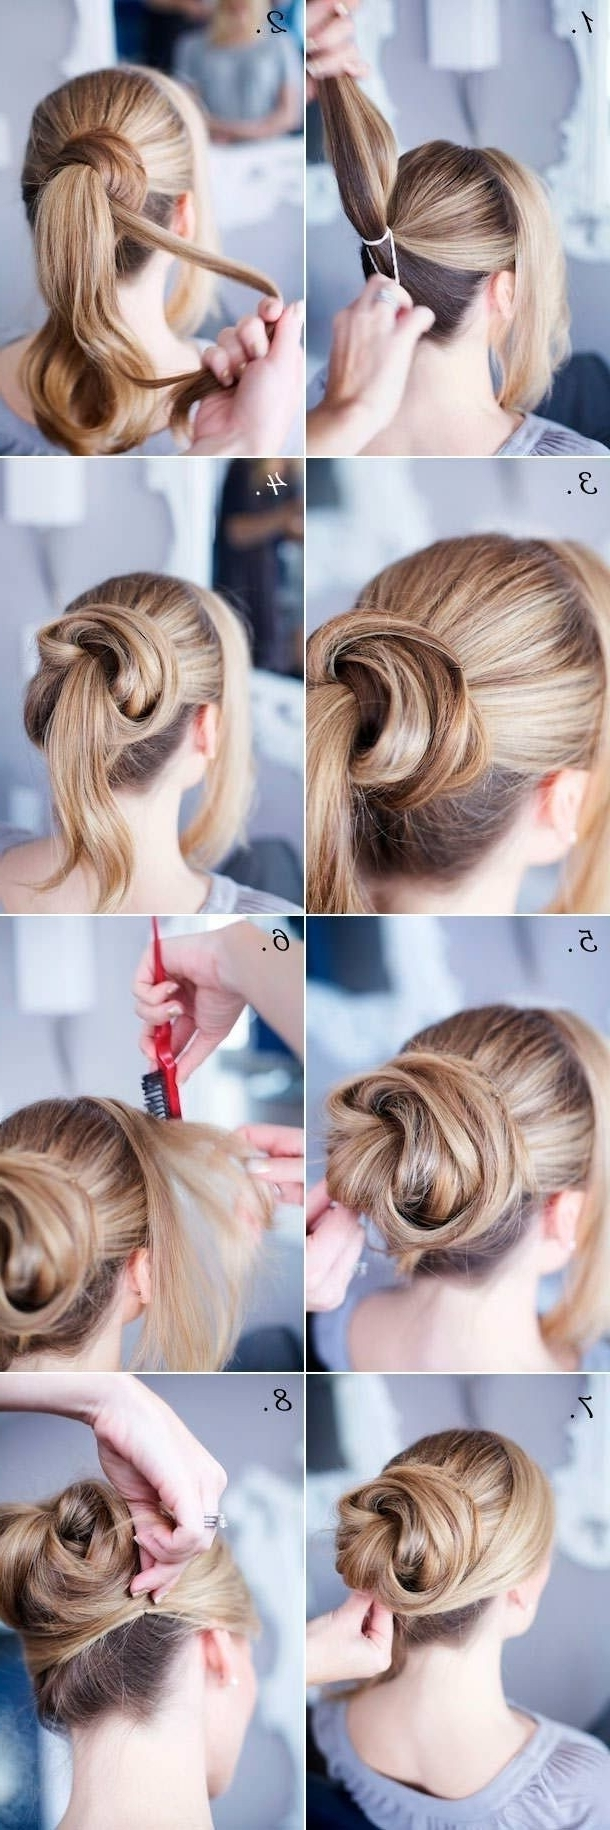 Easy Updo Hairstyle For Thin Hair 12 Trendy Low Bun Updo Hairstyles With Regard To Easy Updo Hairstyles For Thin Hair (View 14 of 15)